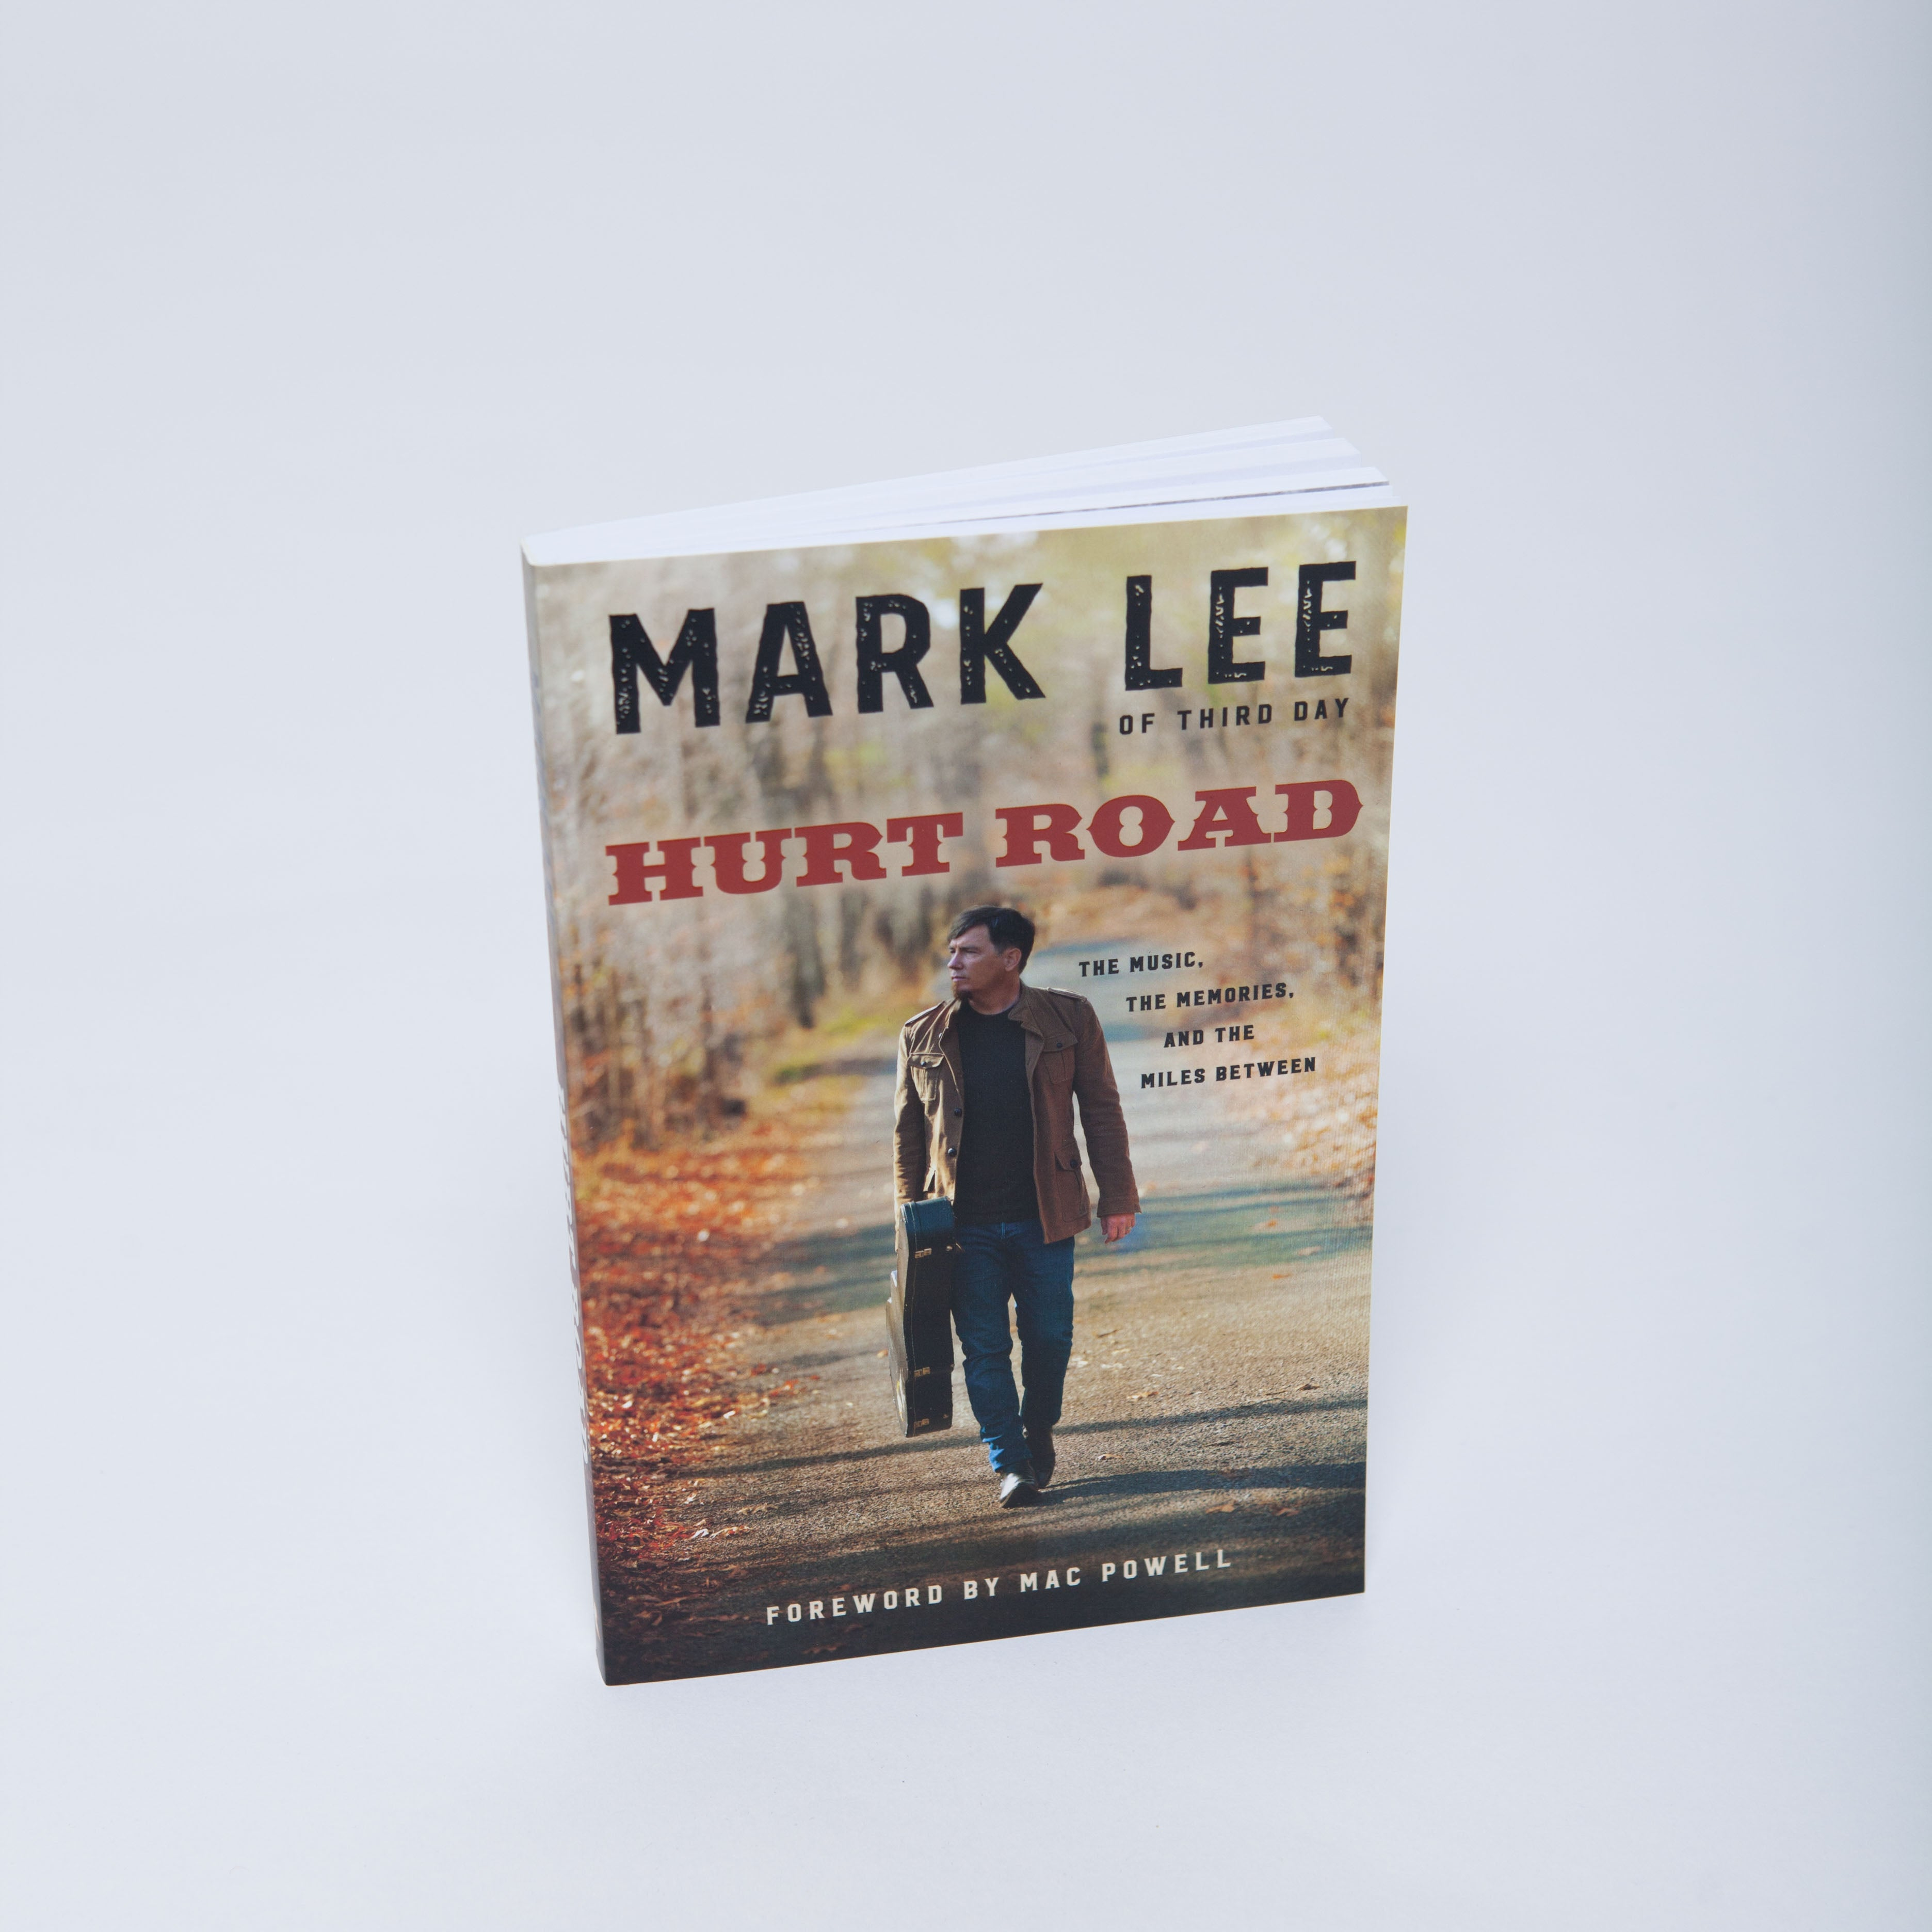 Hurt Road: The Music, The Memories, And The Miles Between by Mark Lee